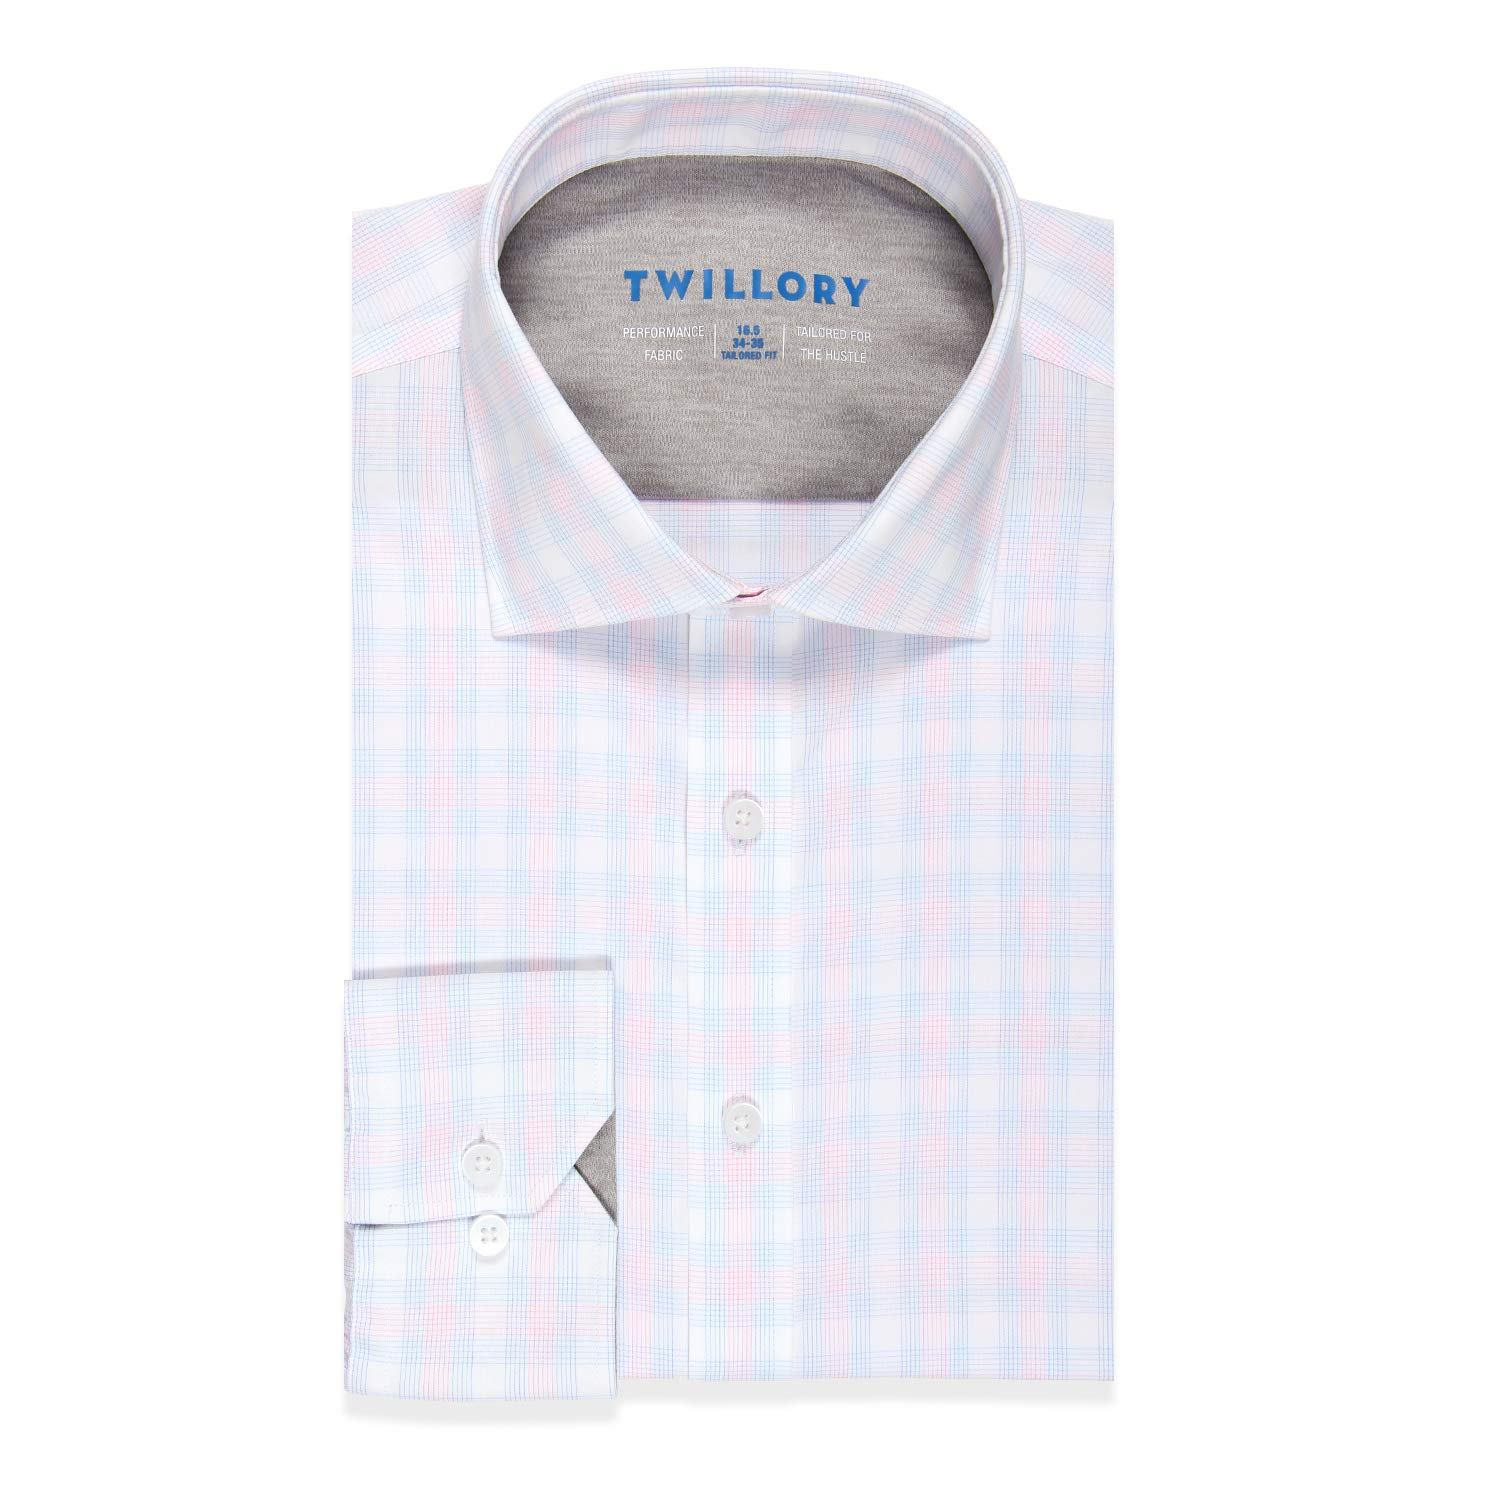 c5f50f698b8 Amazon.com  Twillory Performance Traditional Fit Button Down Dress Shirt  for Men  Clothing